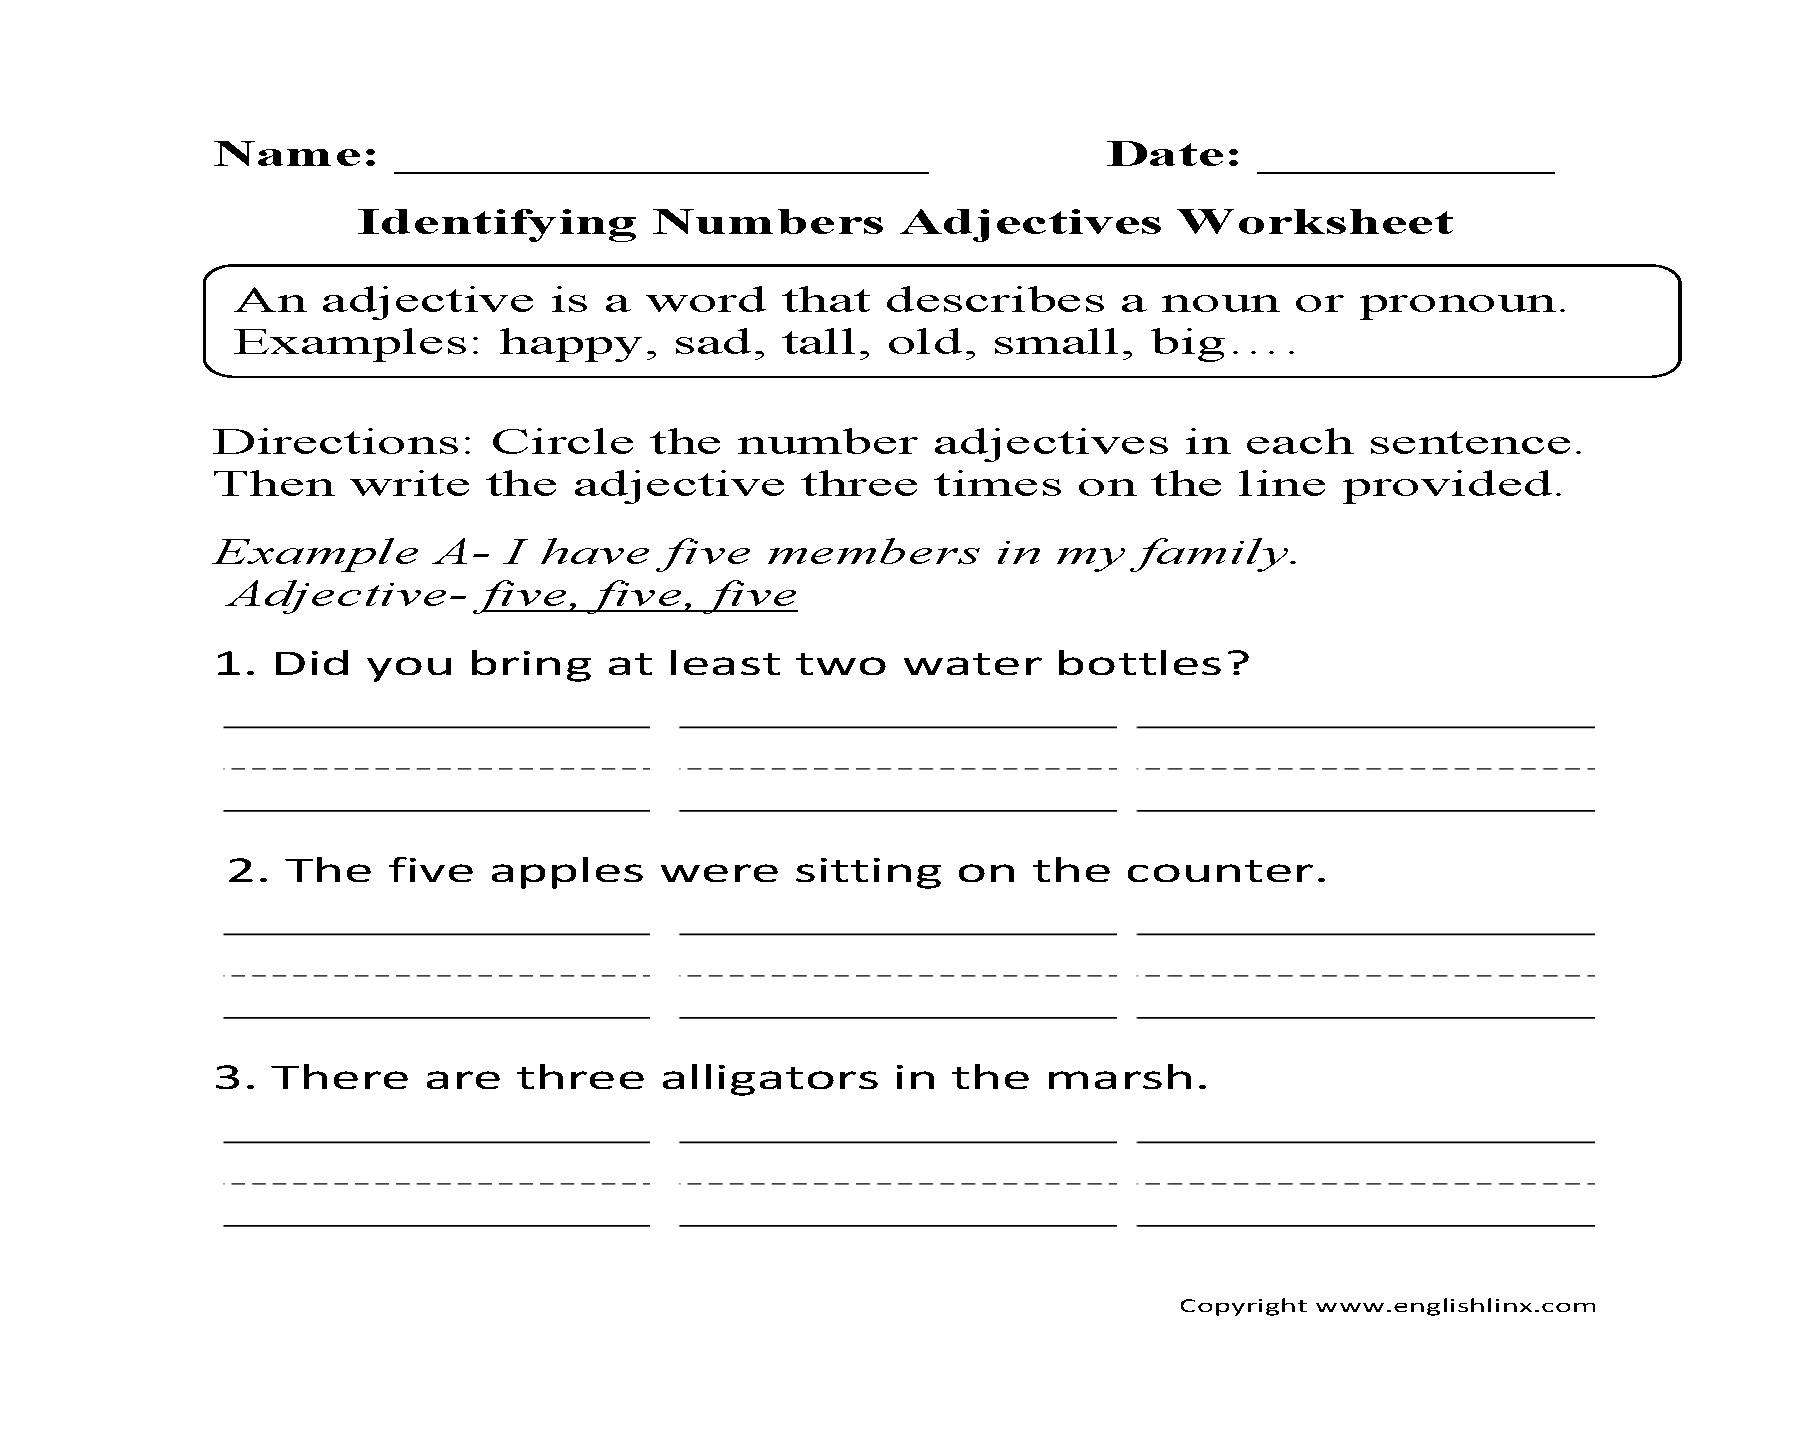 worksheet Adjectives Worksheets For Grade 5 adjectives worksheets regular grades k 5 worksheets